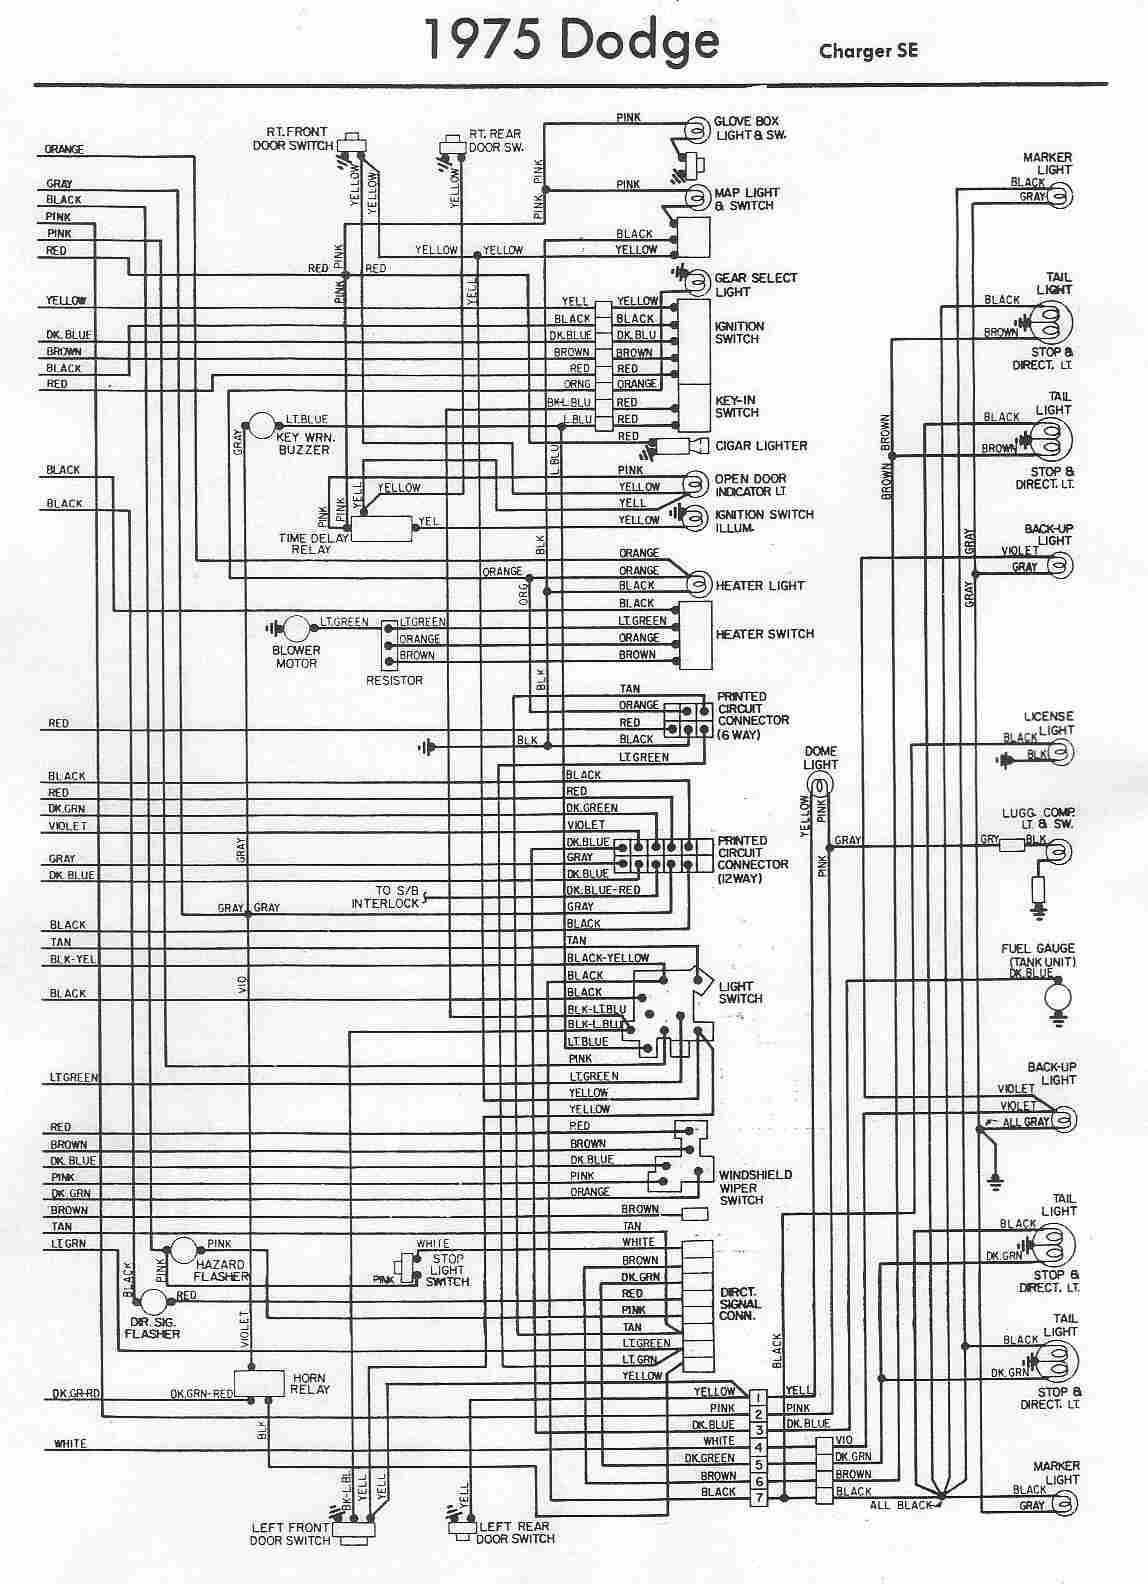 Dodge Car Manuals Wiring Diagrams Pdf Fault Codes 1973 Gmc Sierra Engine Diagram Download